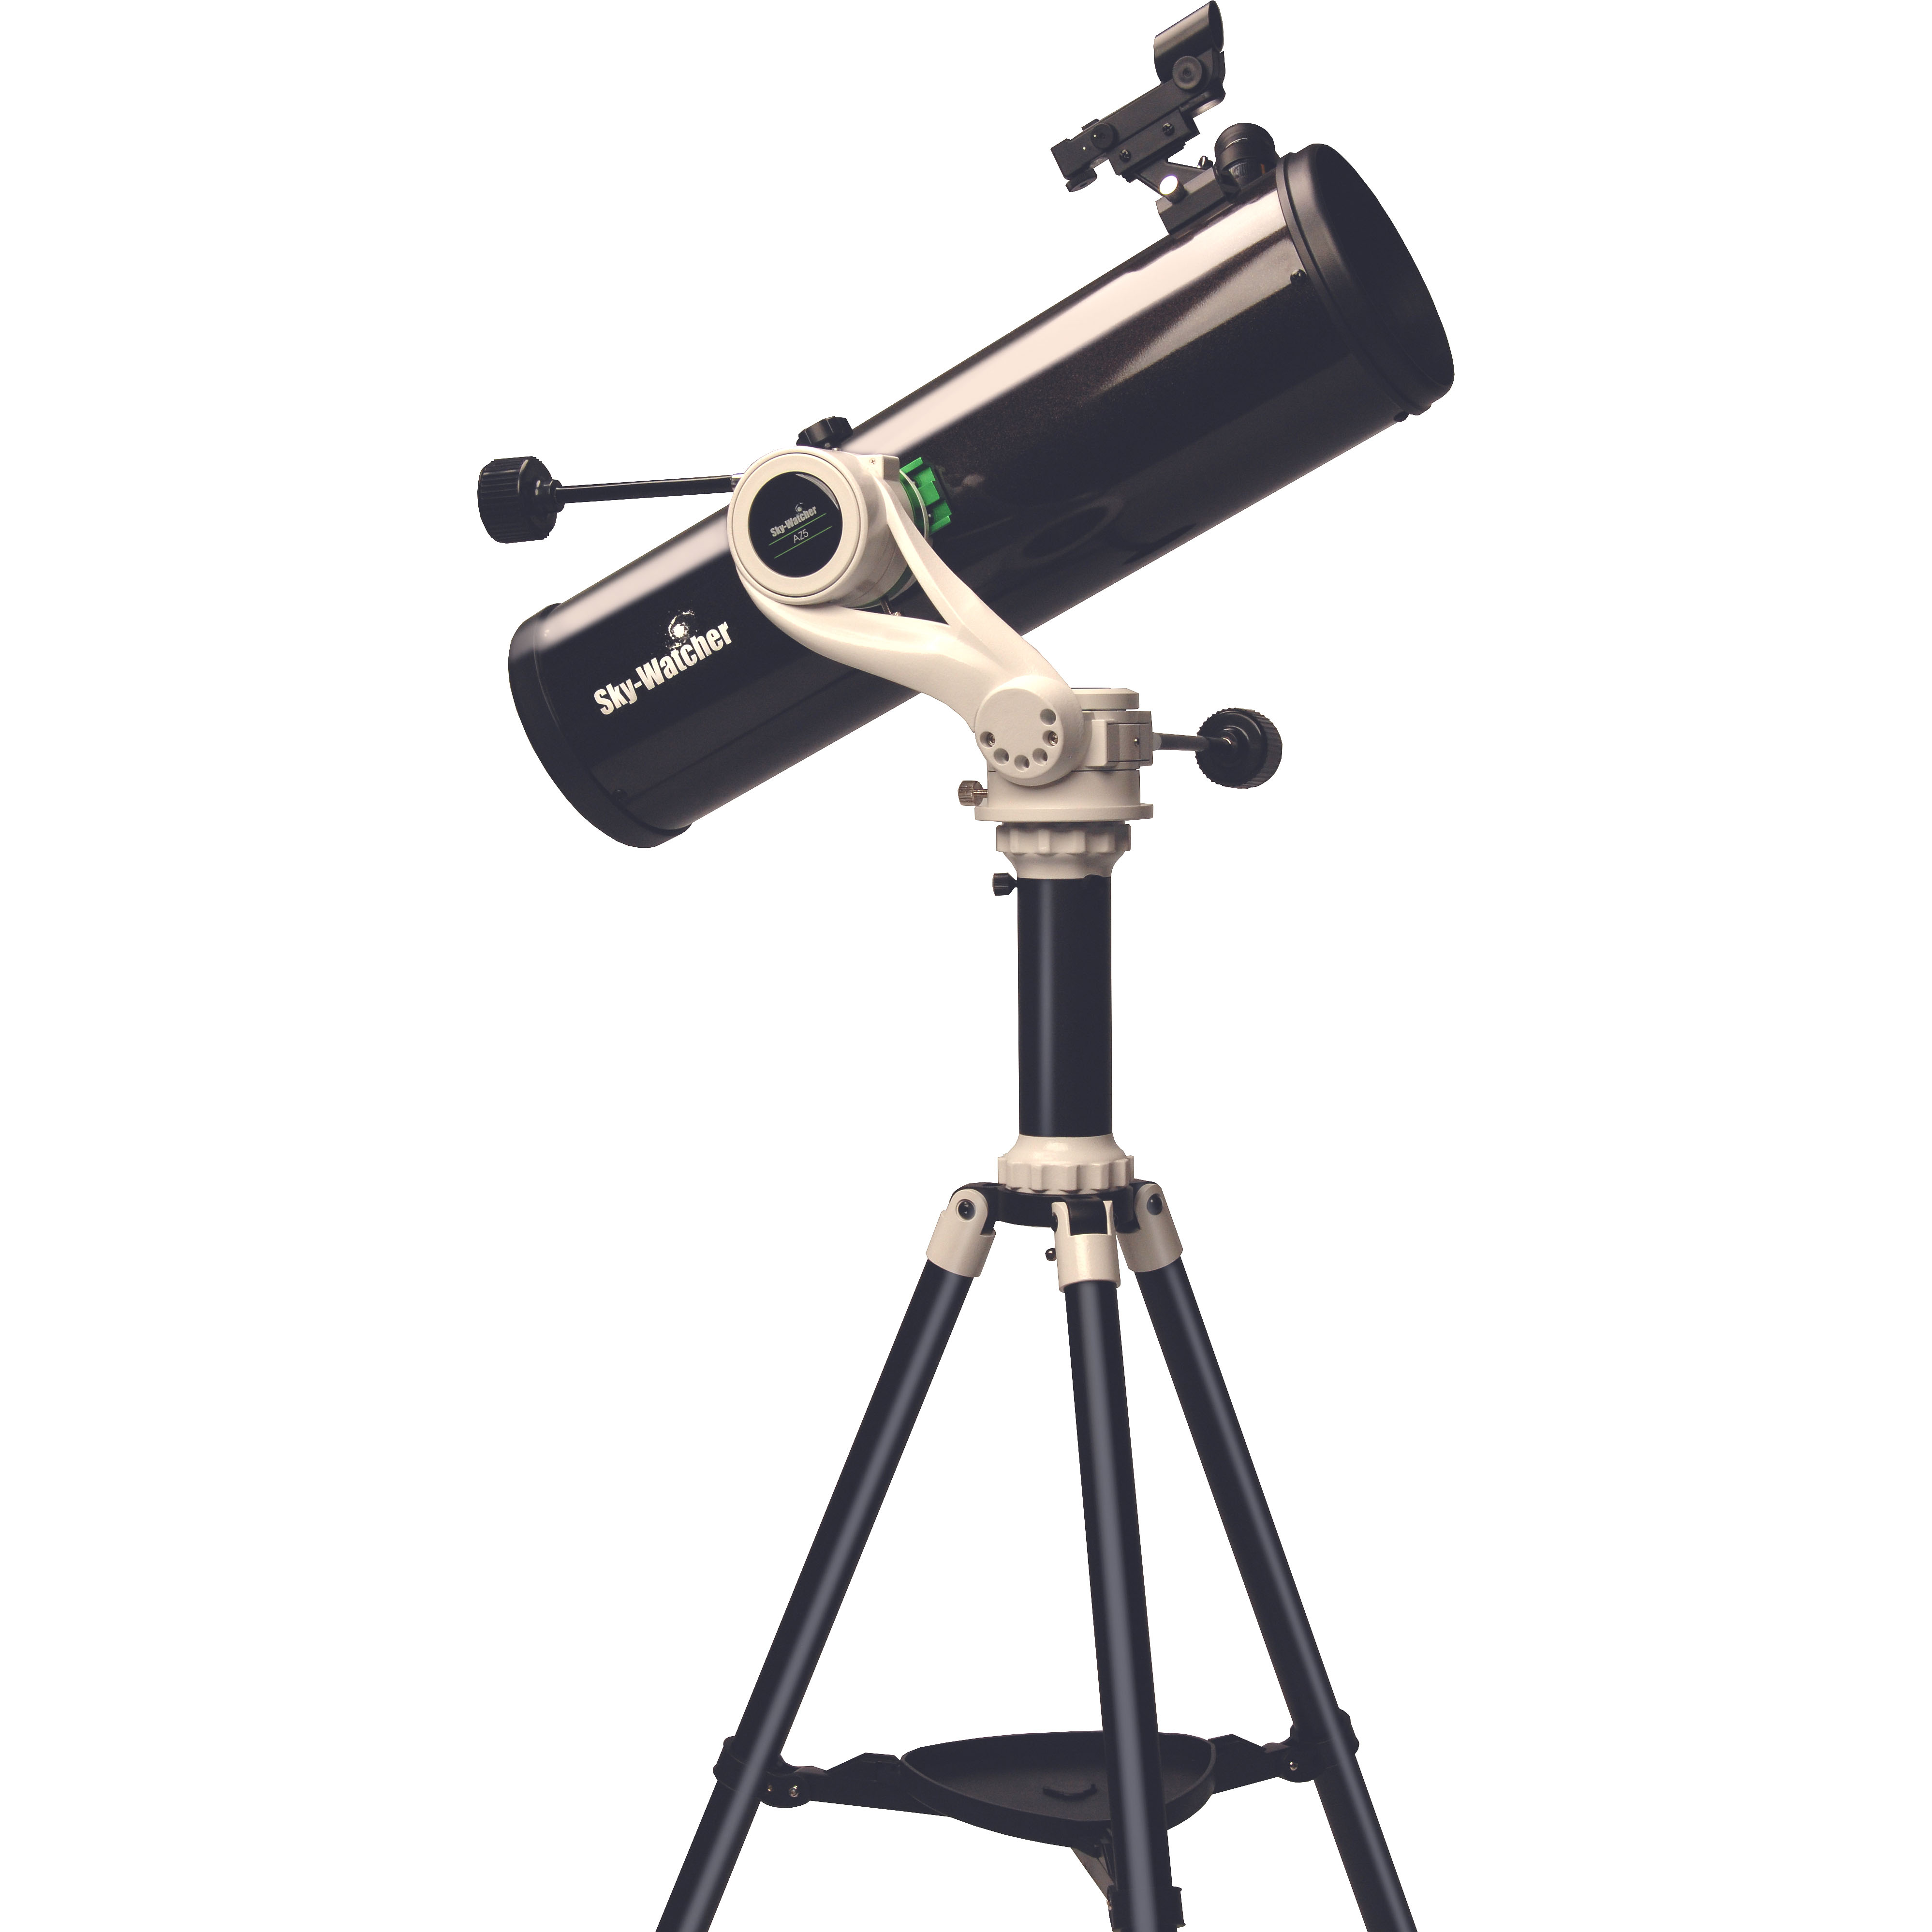 Sky-Watcher Explorer-130PS (AZ5) Telescope